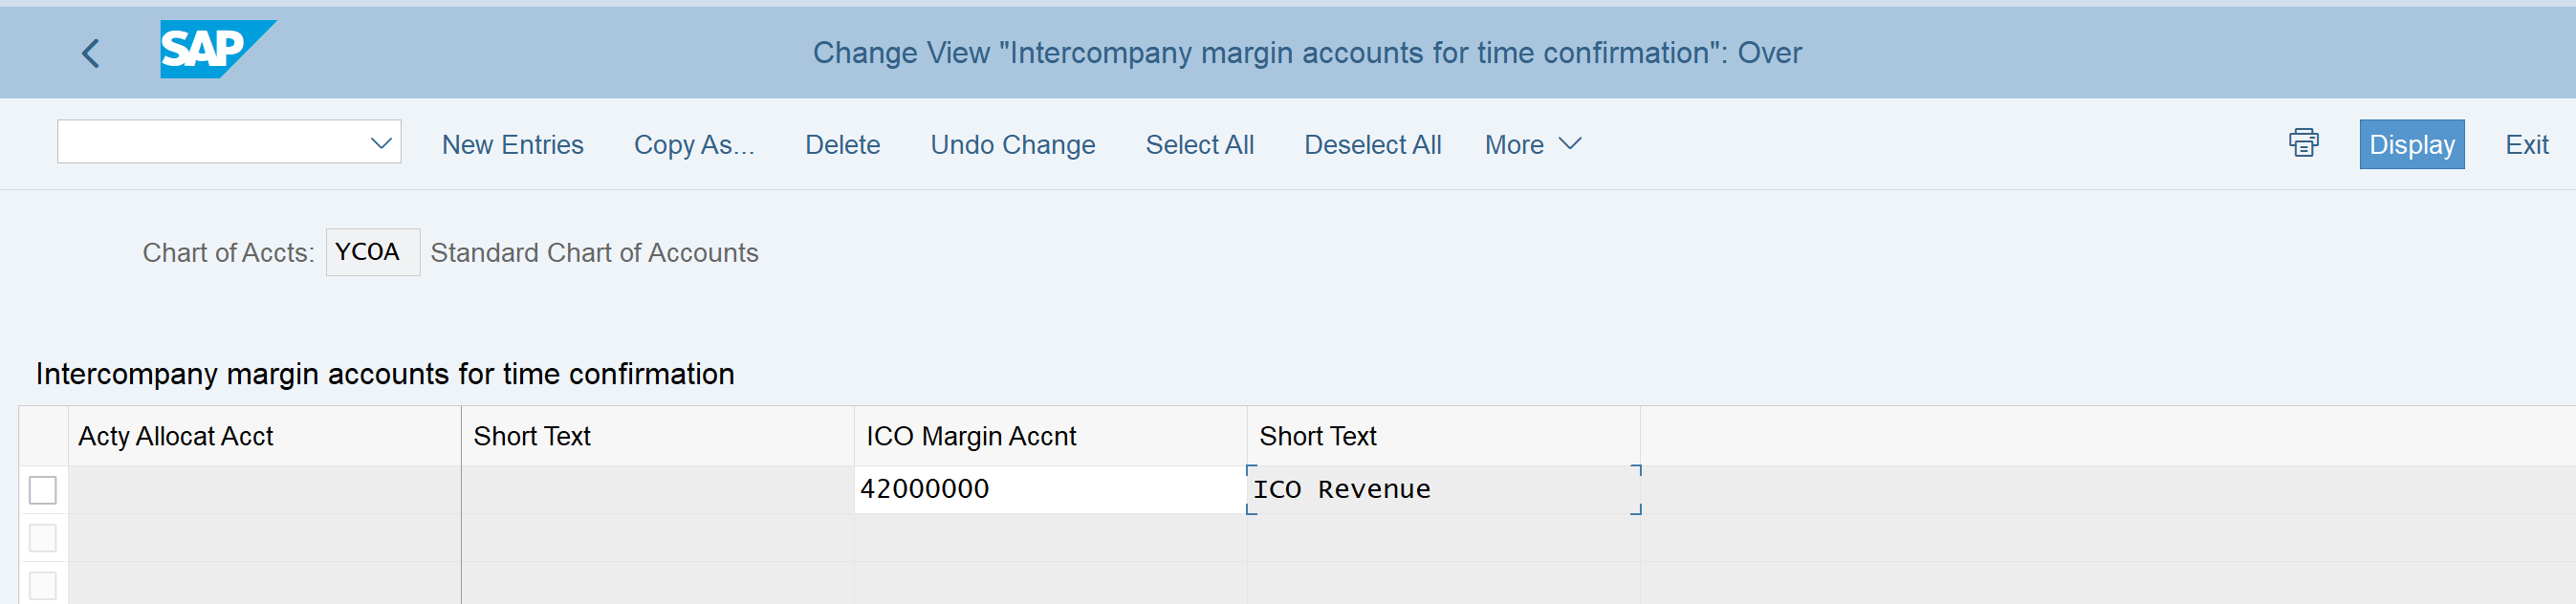 6. Intercompany Margin Accounts